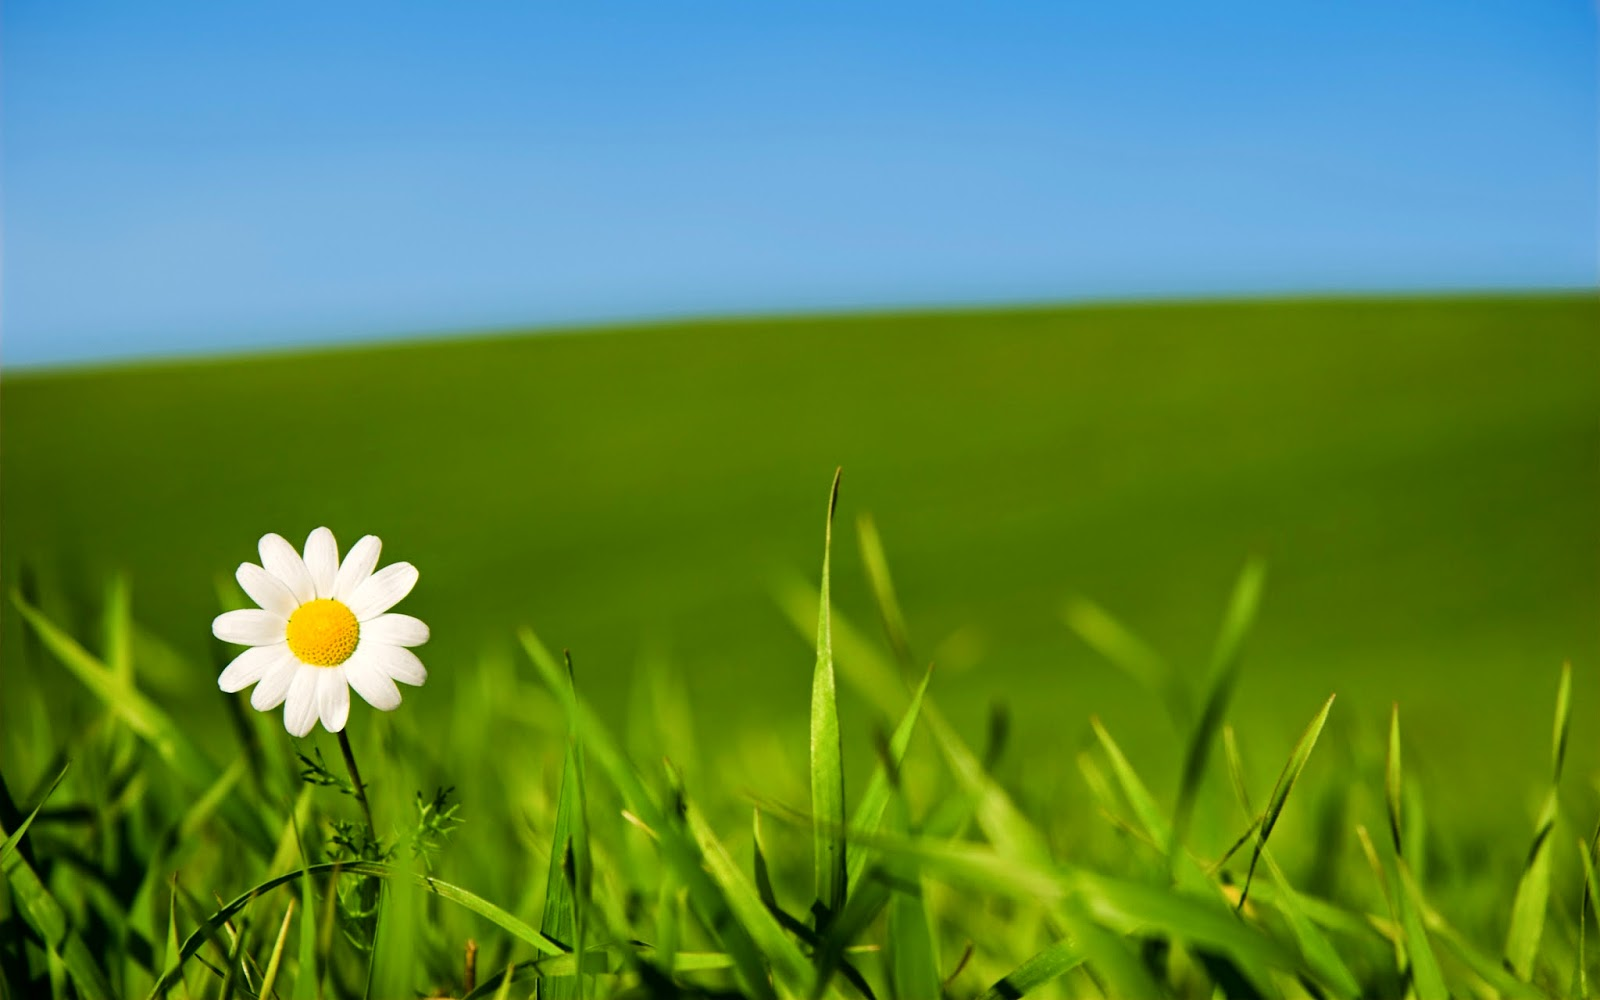 beautiful-white-daisy-flower-green-field-background.jpg